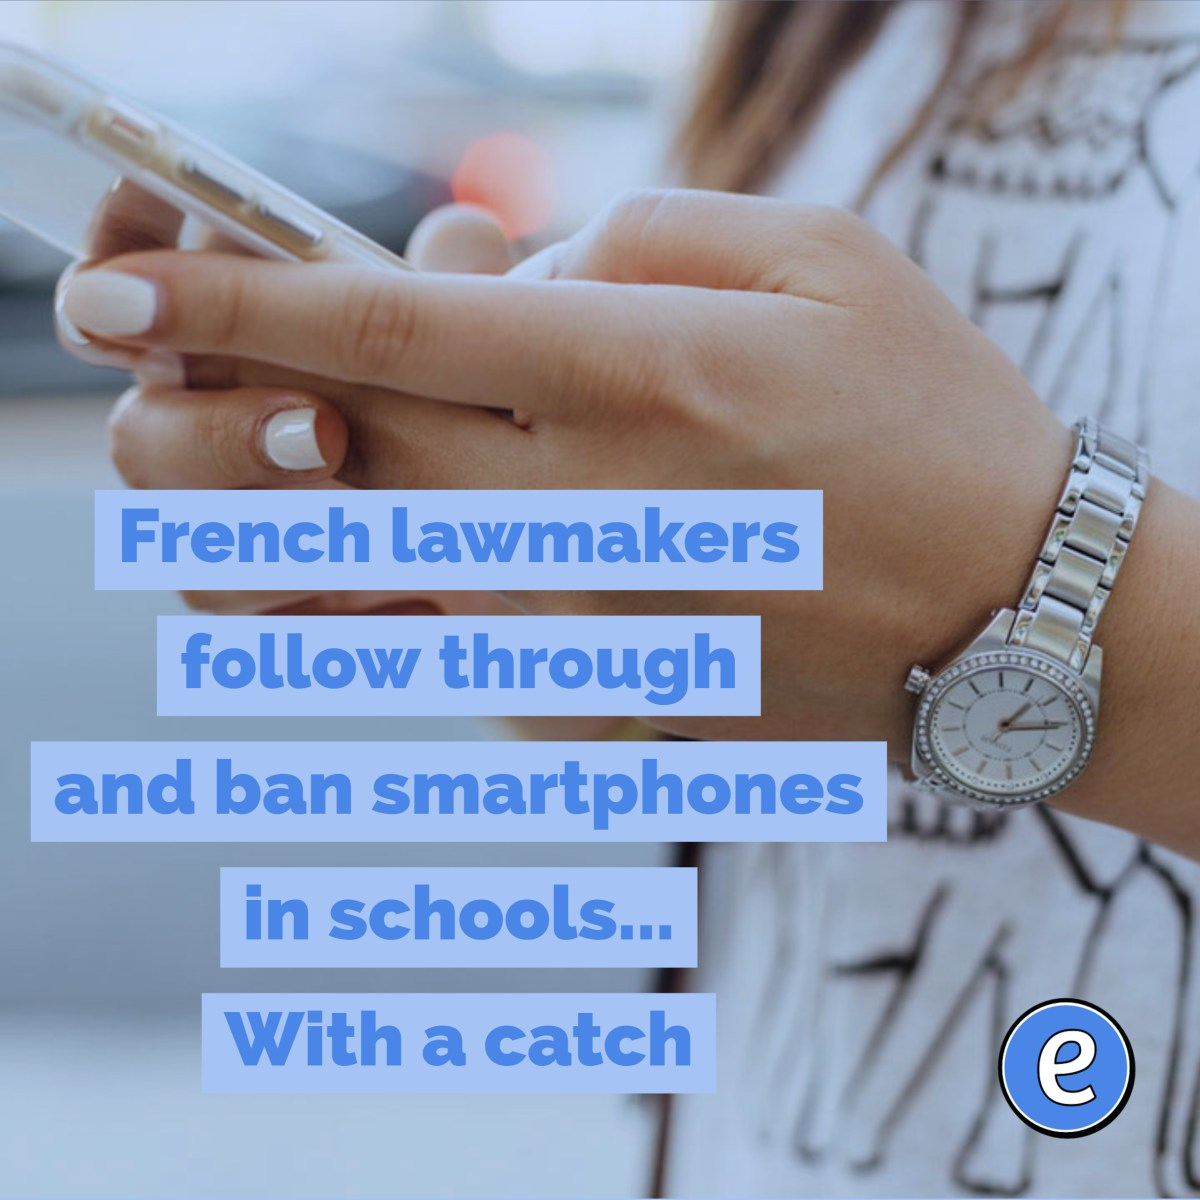 French lawmakers follow through and ban smartphones in schools... With a catch